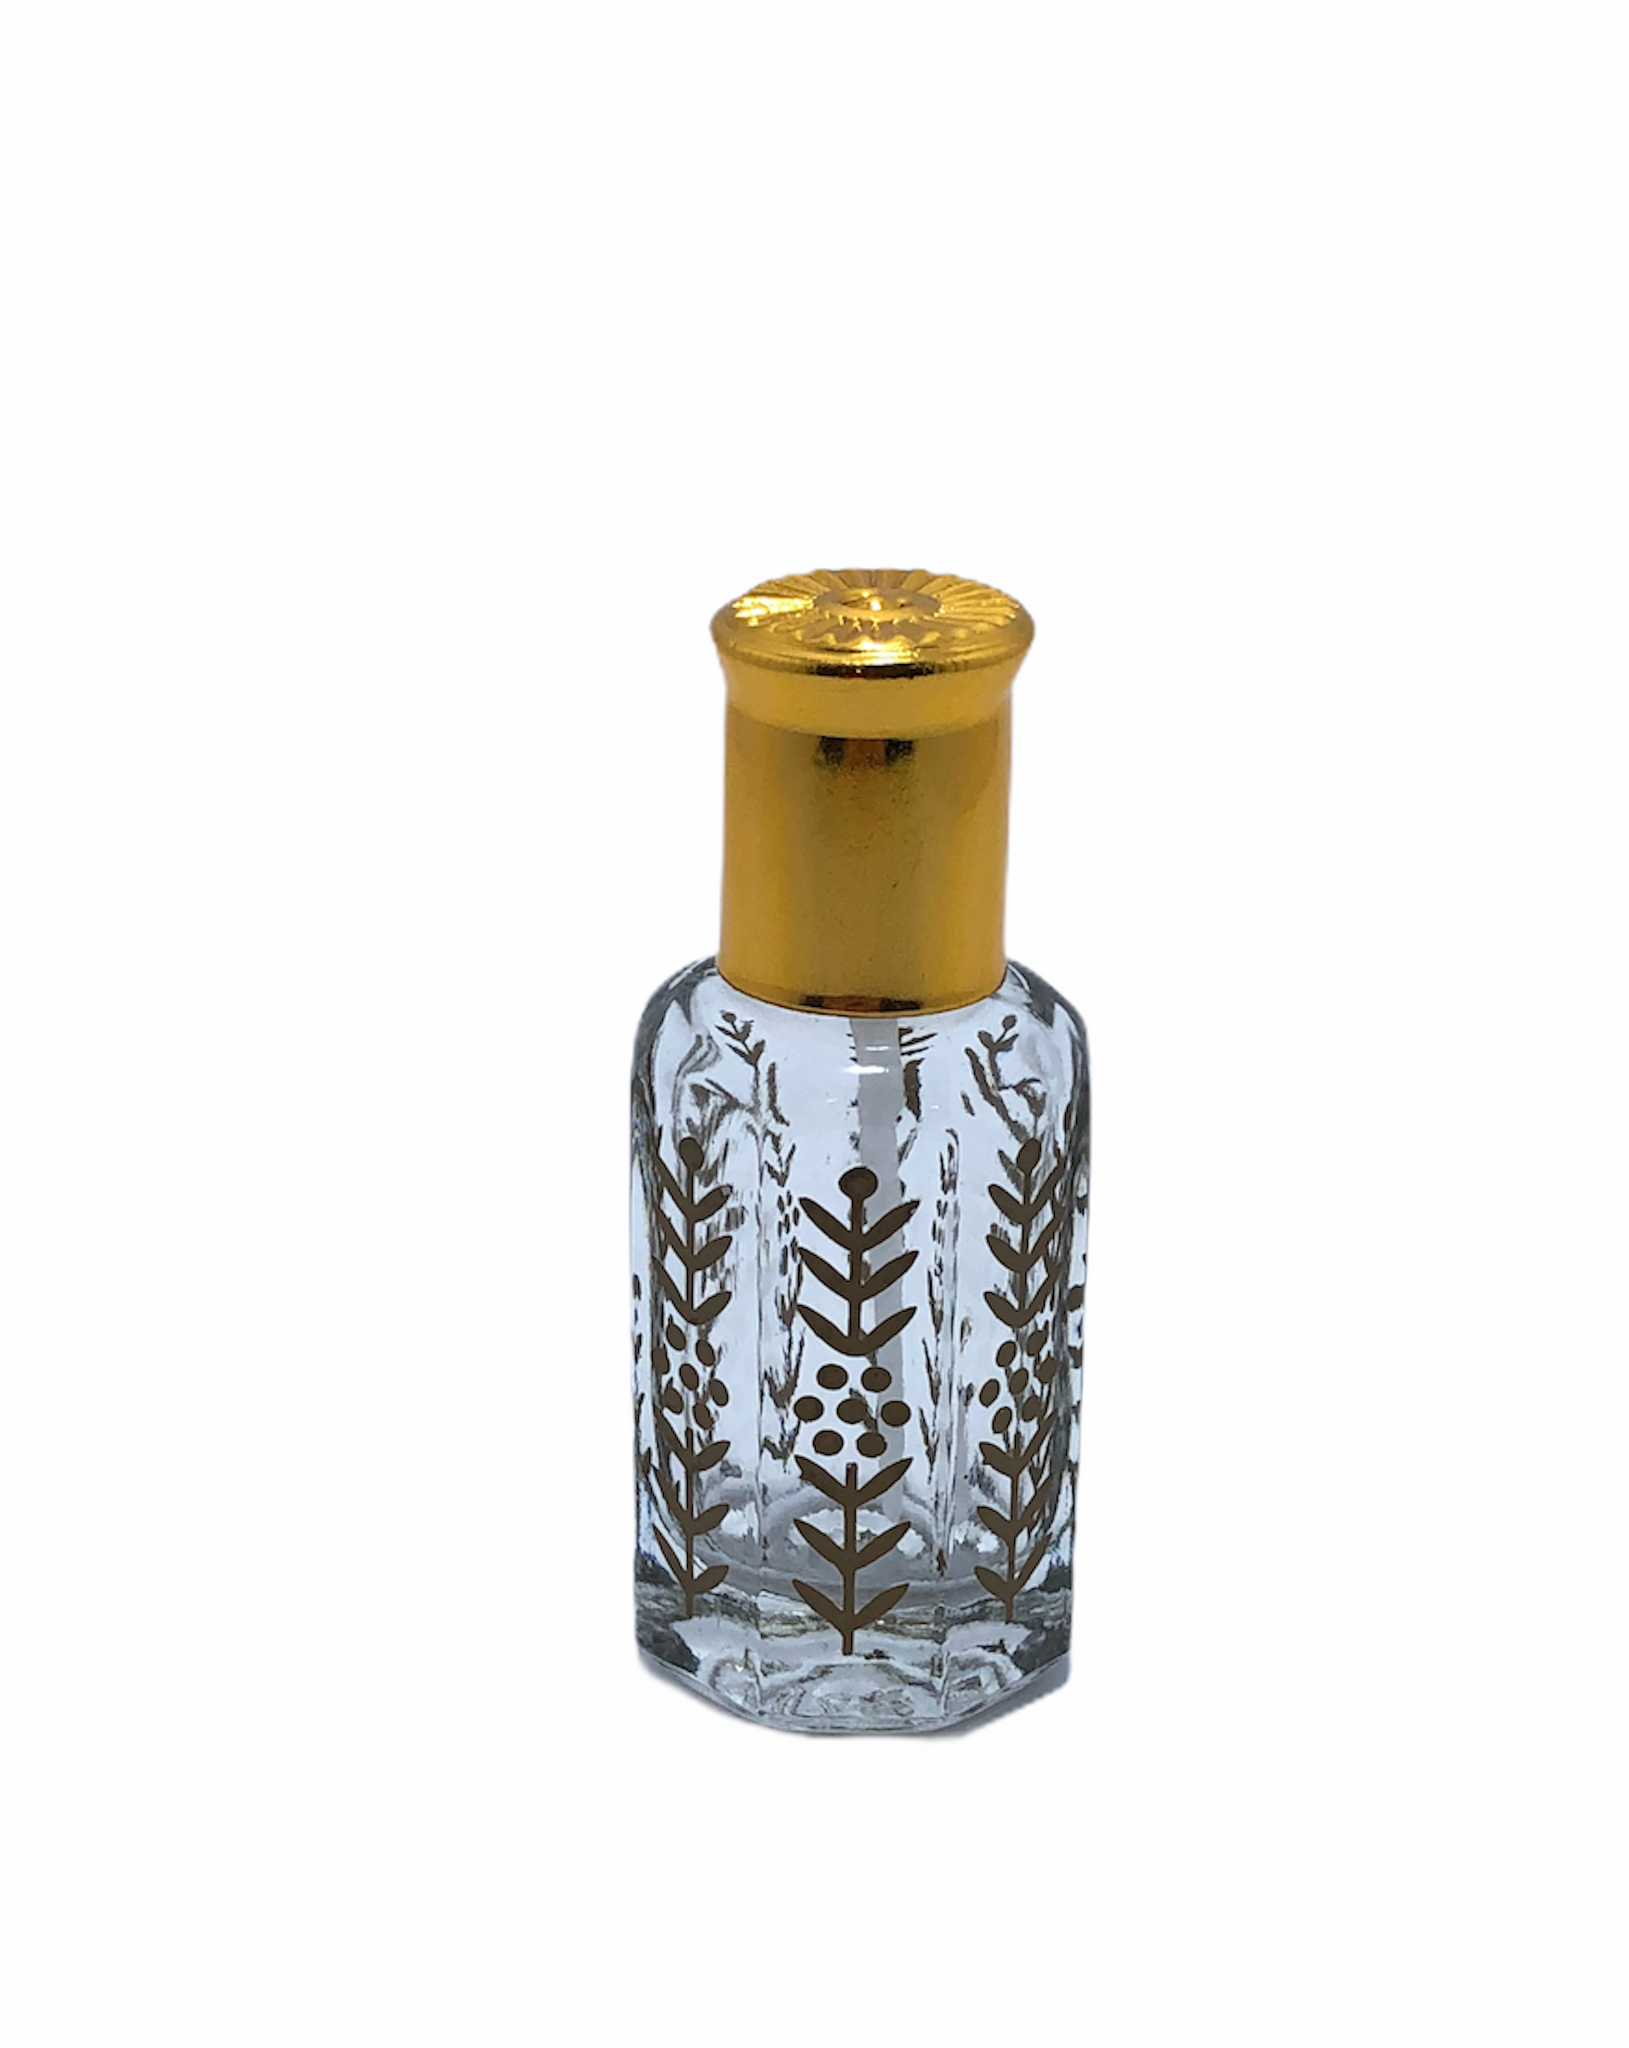 12ML Perfume Oil Bottle (1 Tola)